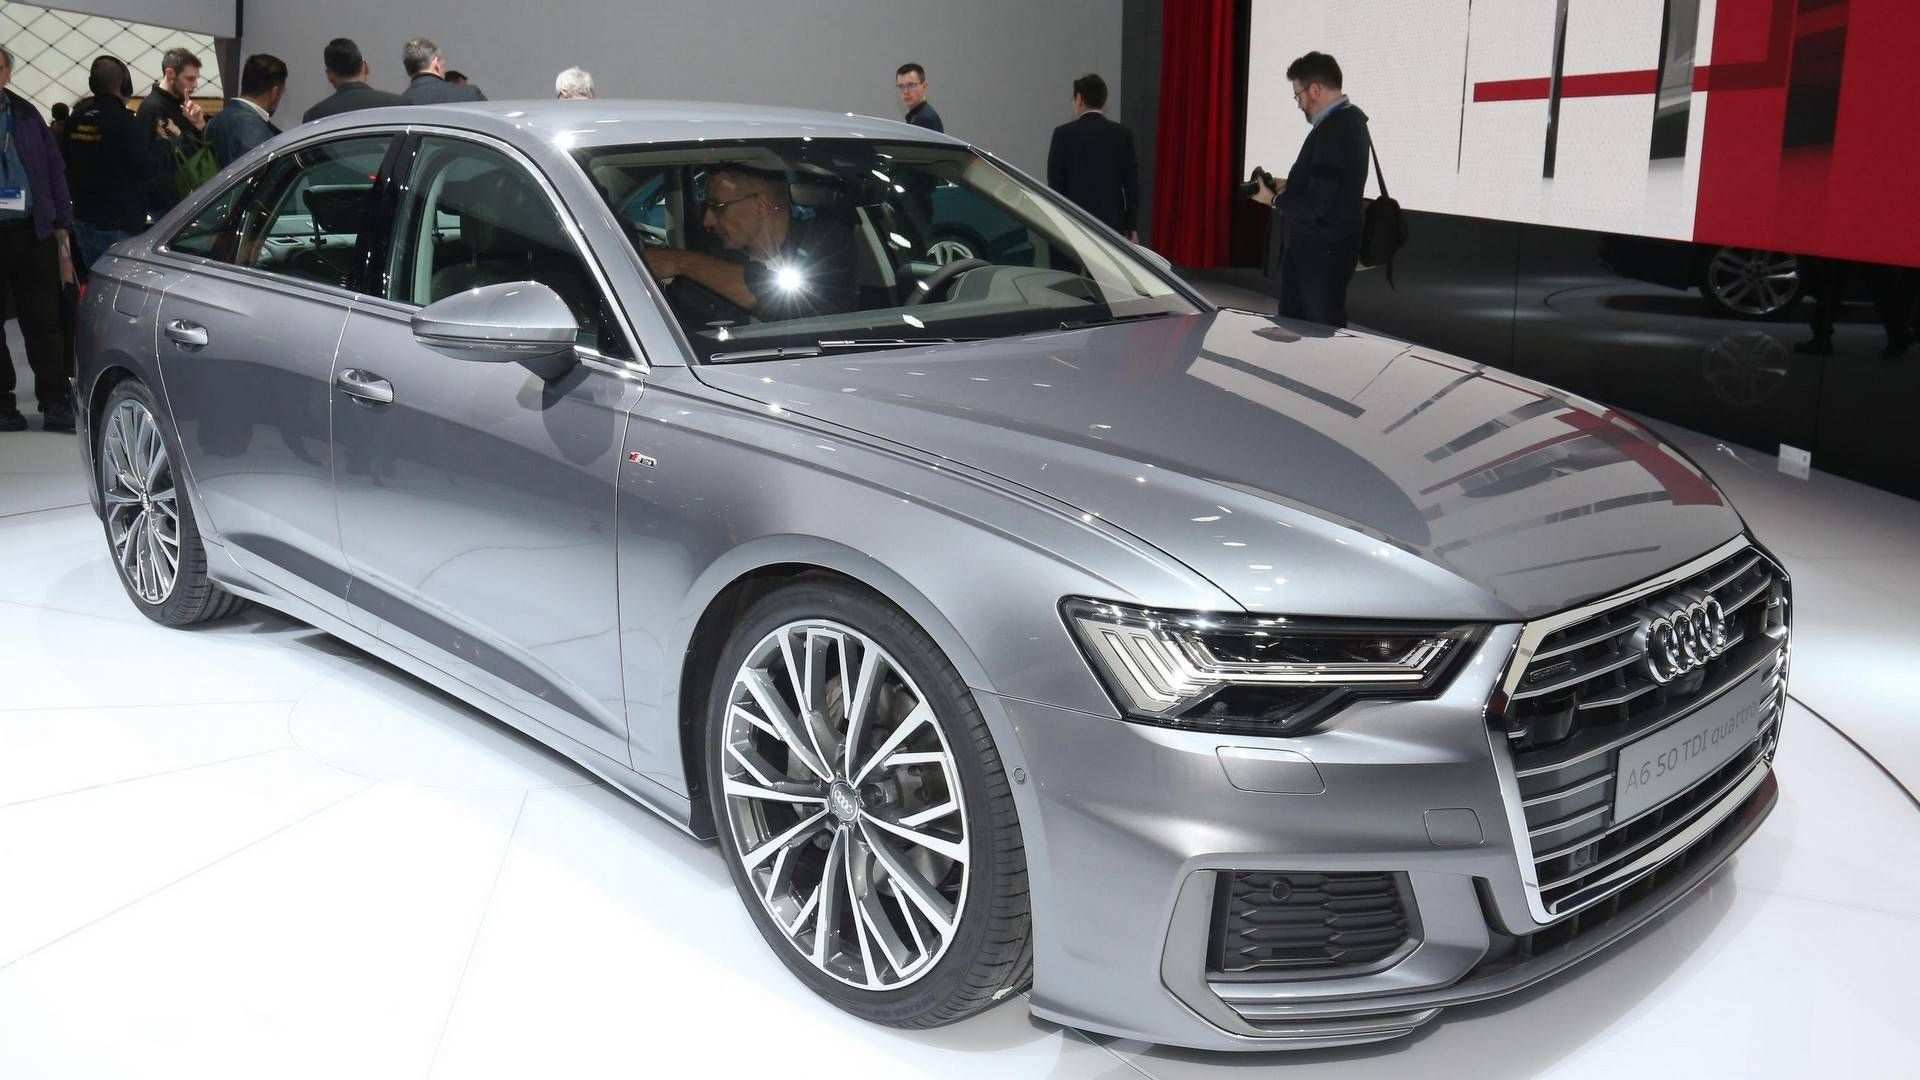 74 All New 2019 Audi A6 Specs Interior with 2019 Audi A6 Specs